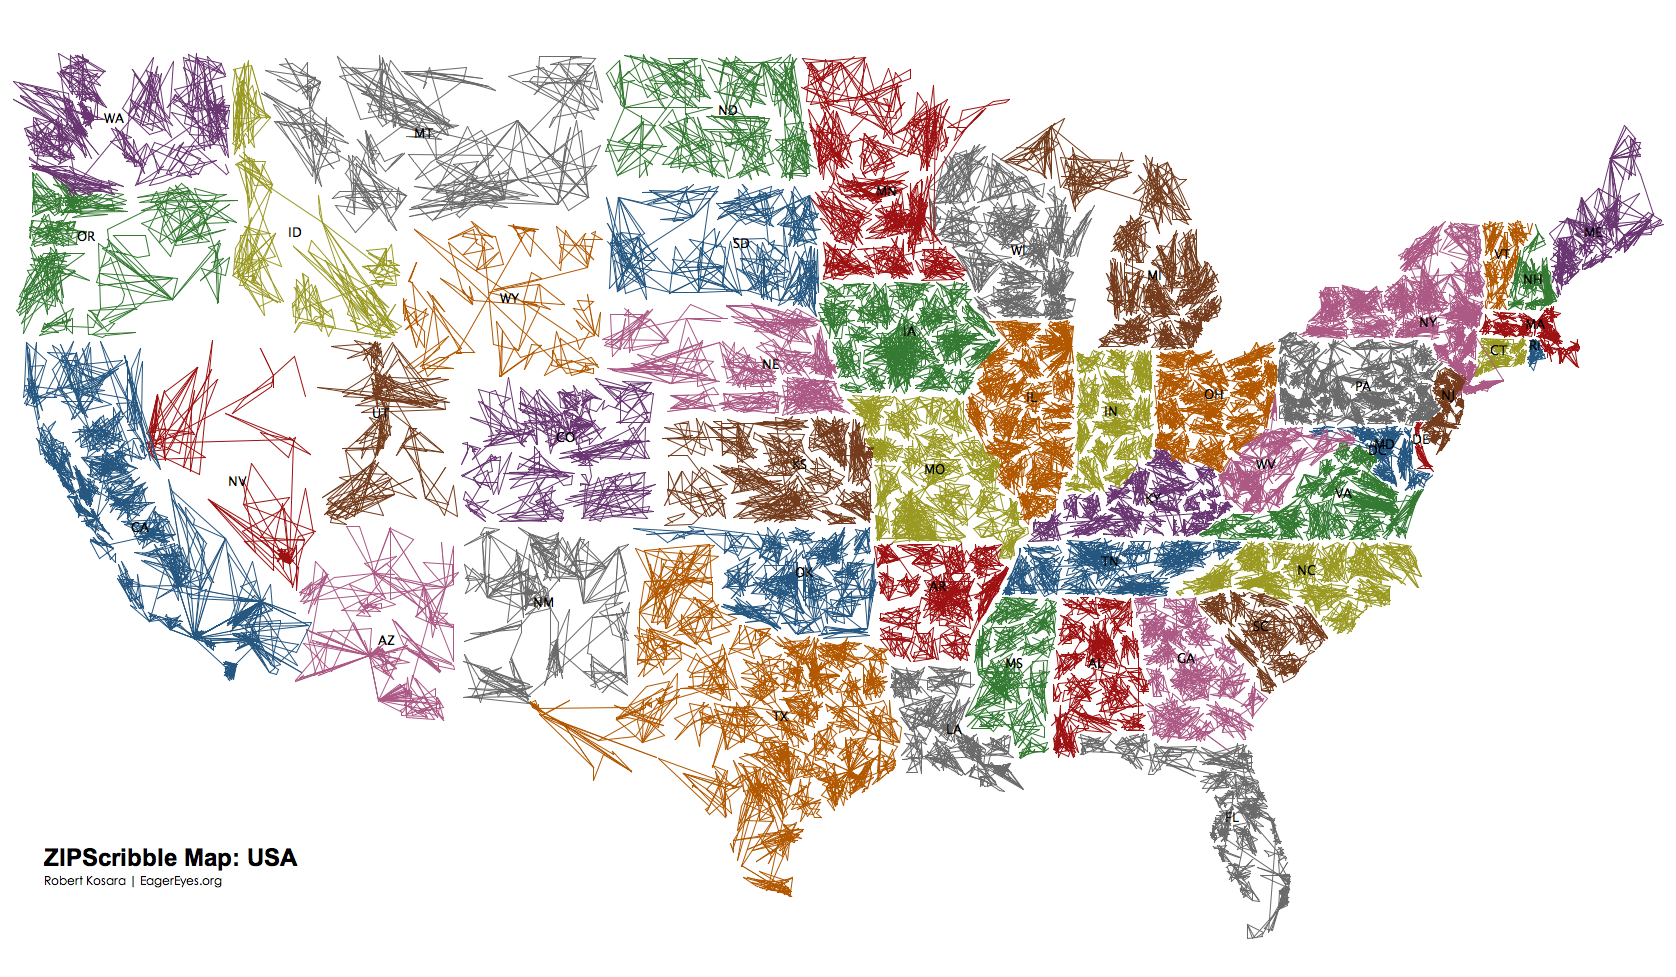 Us Map Color Code.All The Colors Of The Us Or The Roots Of Zip Code Routing From